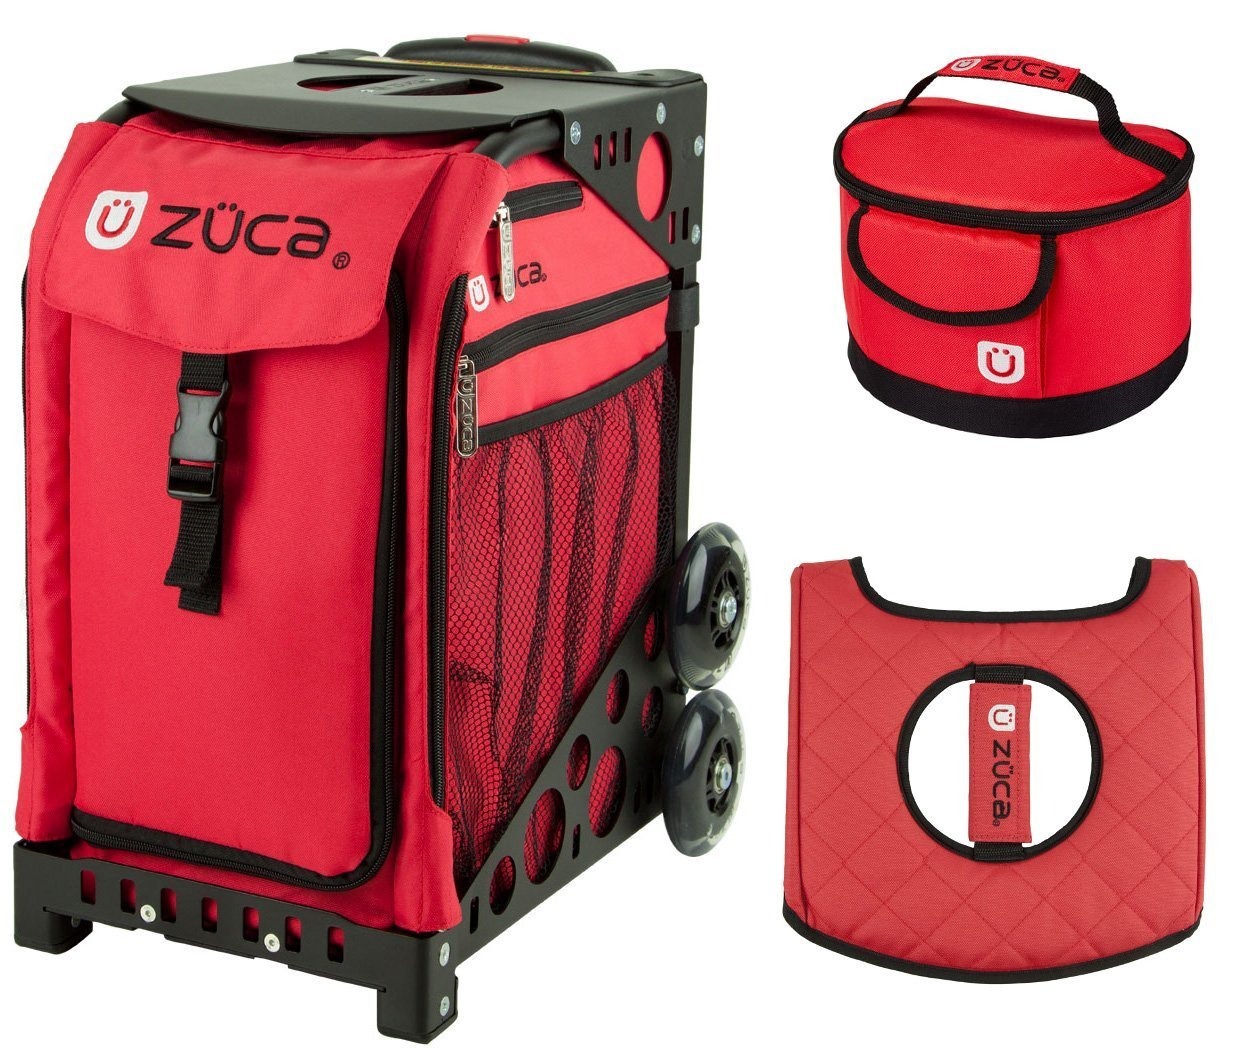 Zuca Sport Bag - Chili with Gift Lunchbox and Seat Cover (Black Frame) by ZUCA